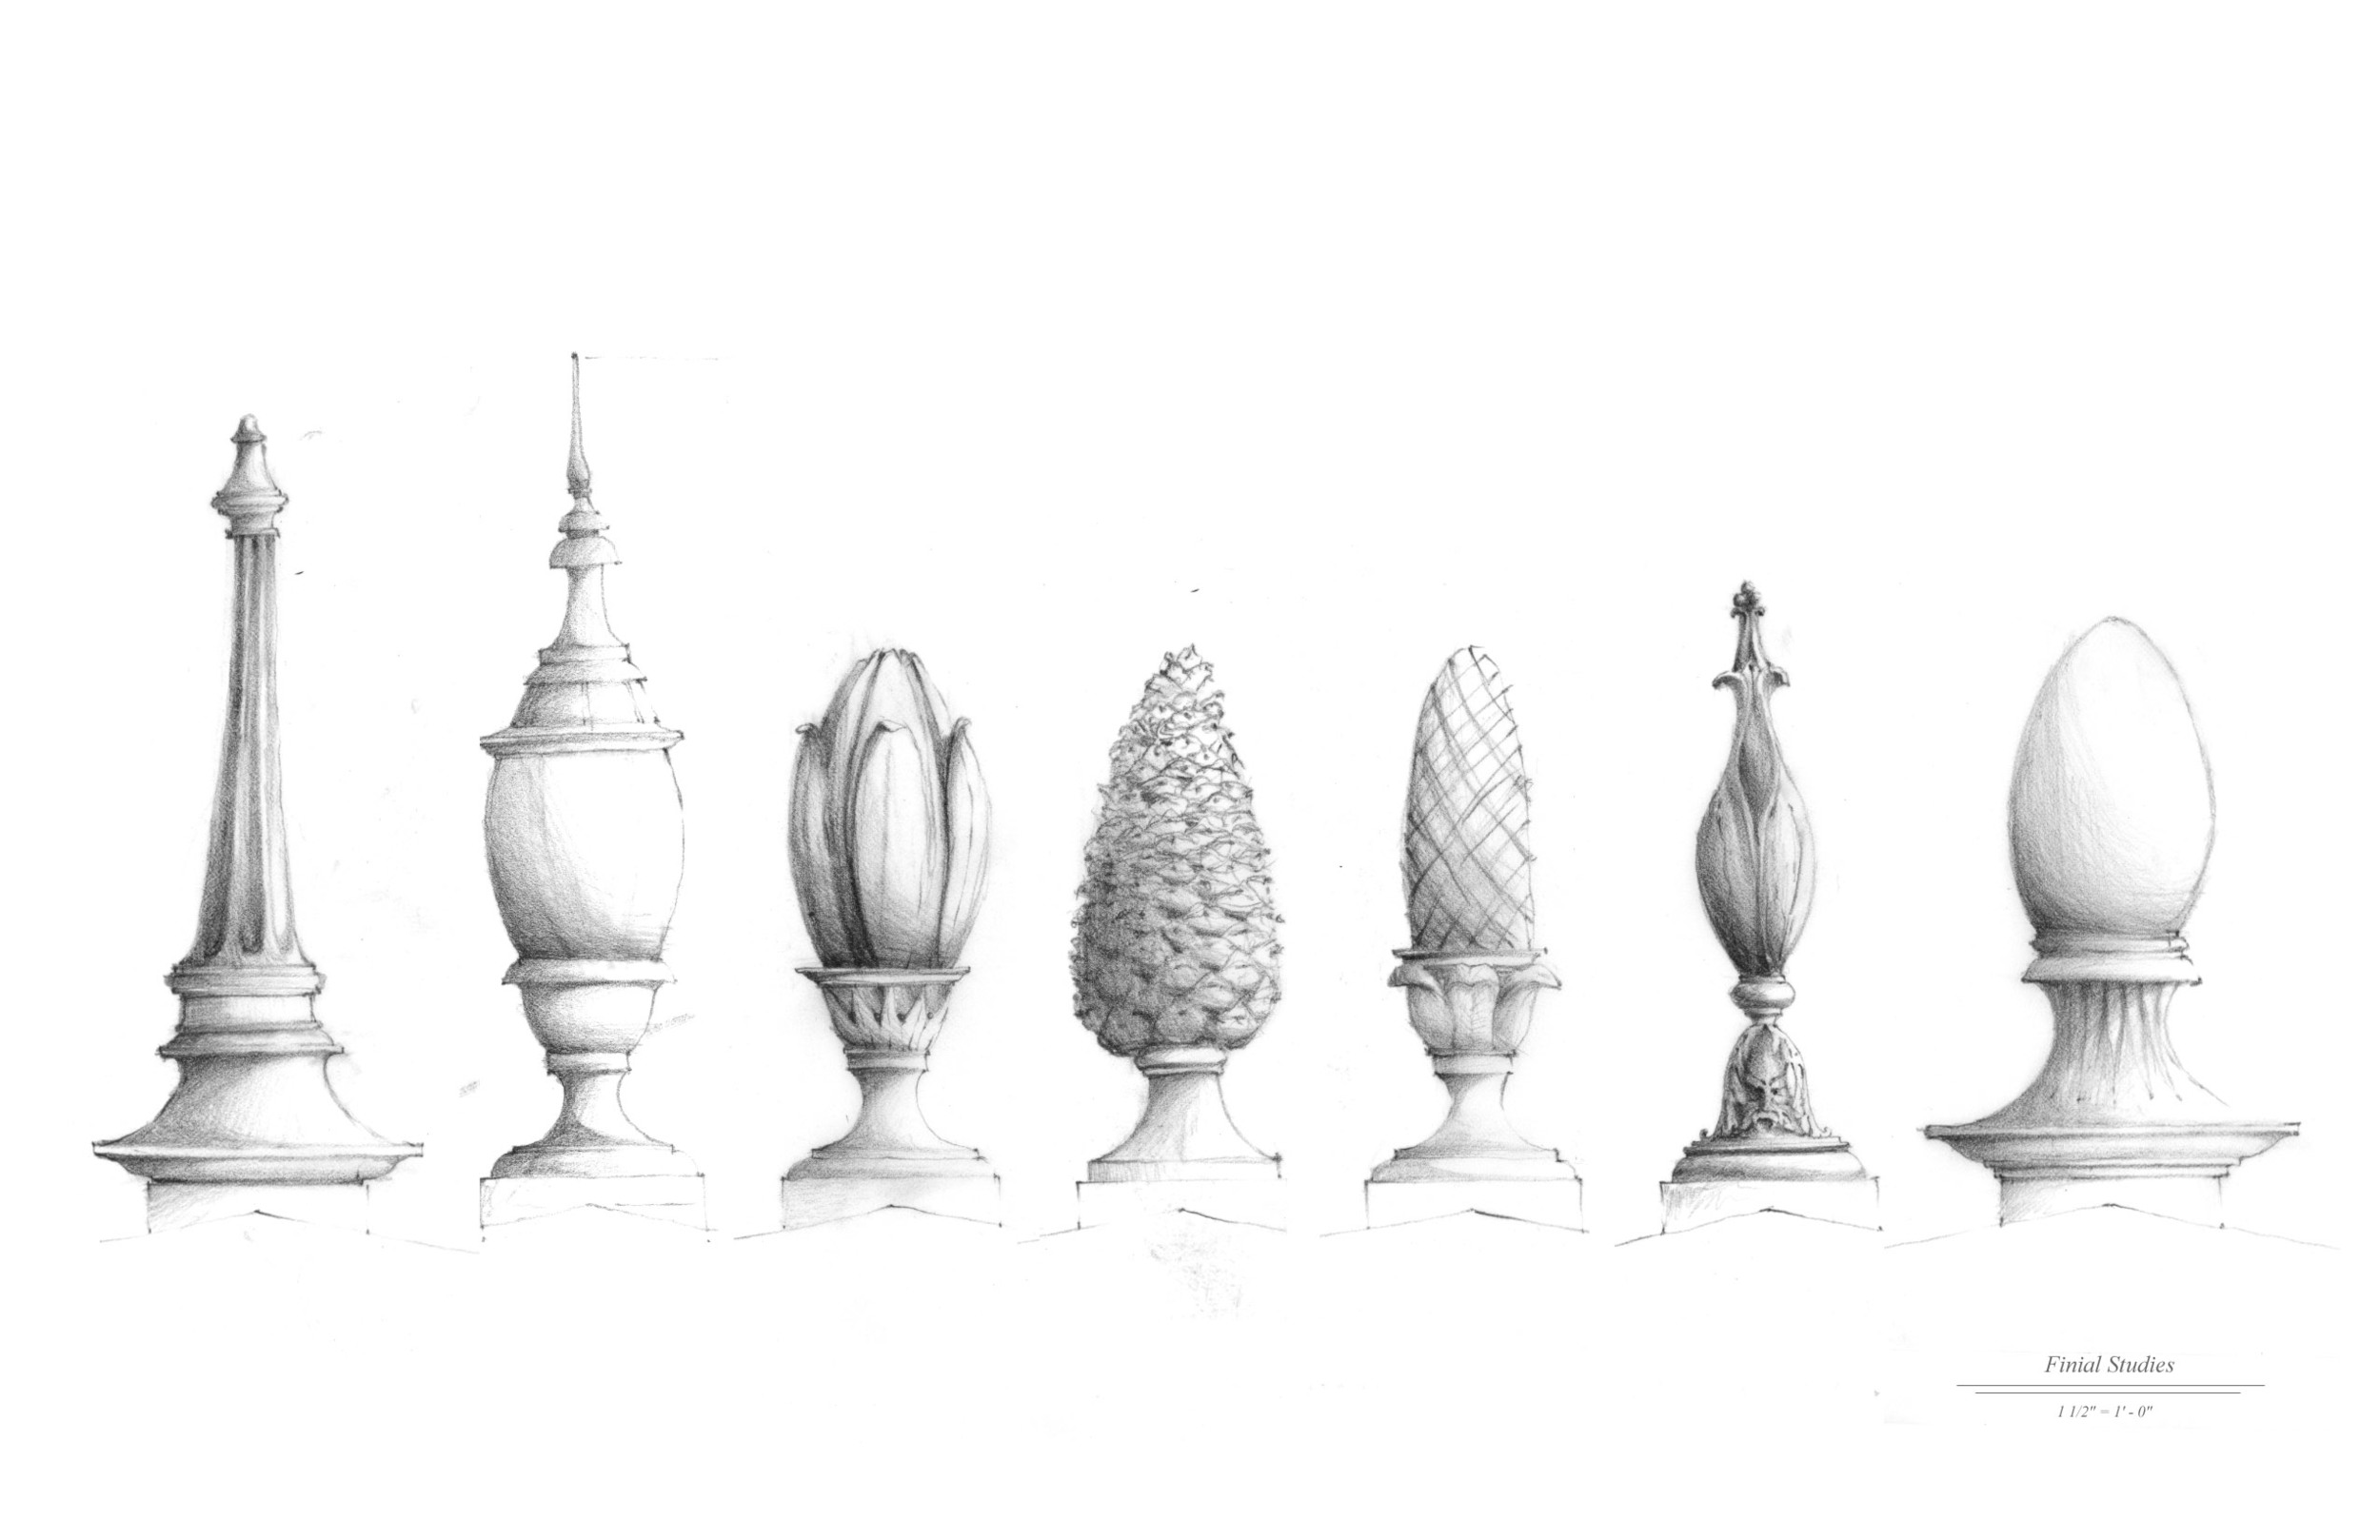 09_07_14-Broomley-Finial Studies.jpg